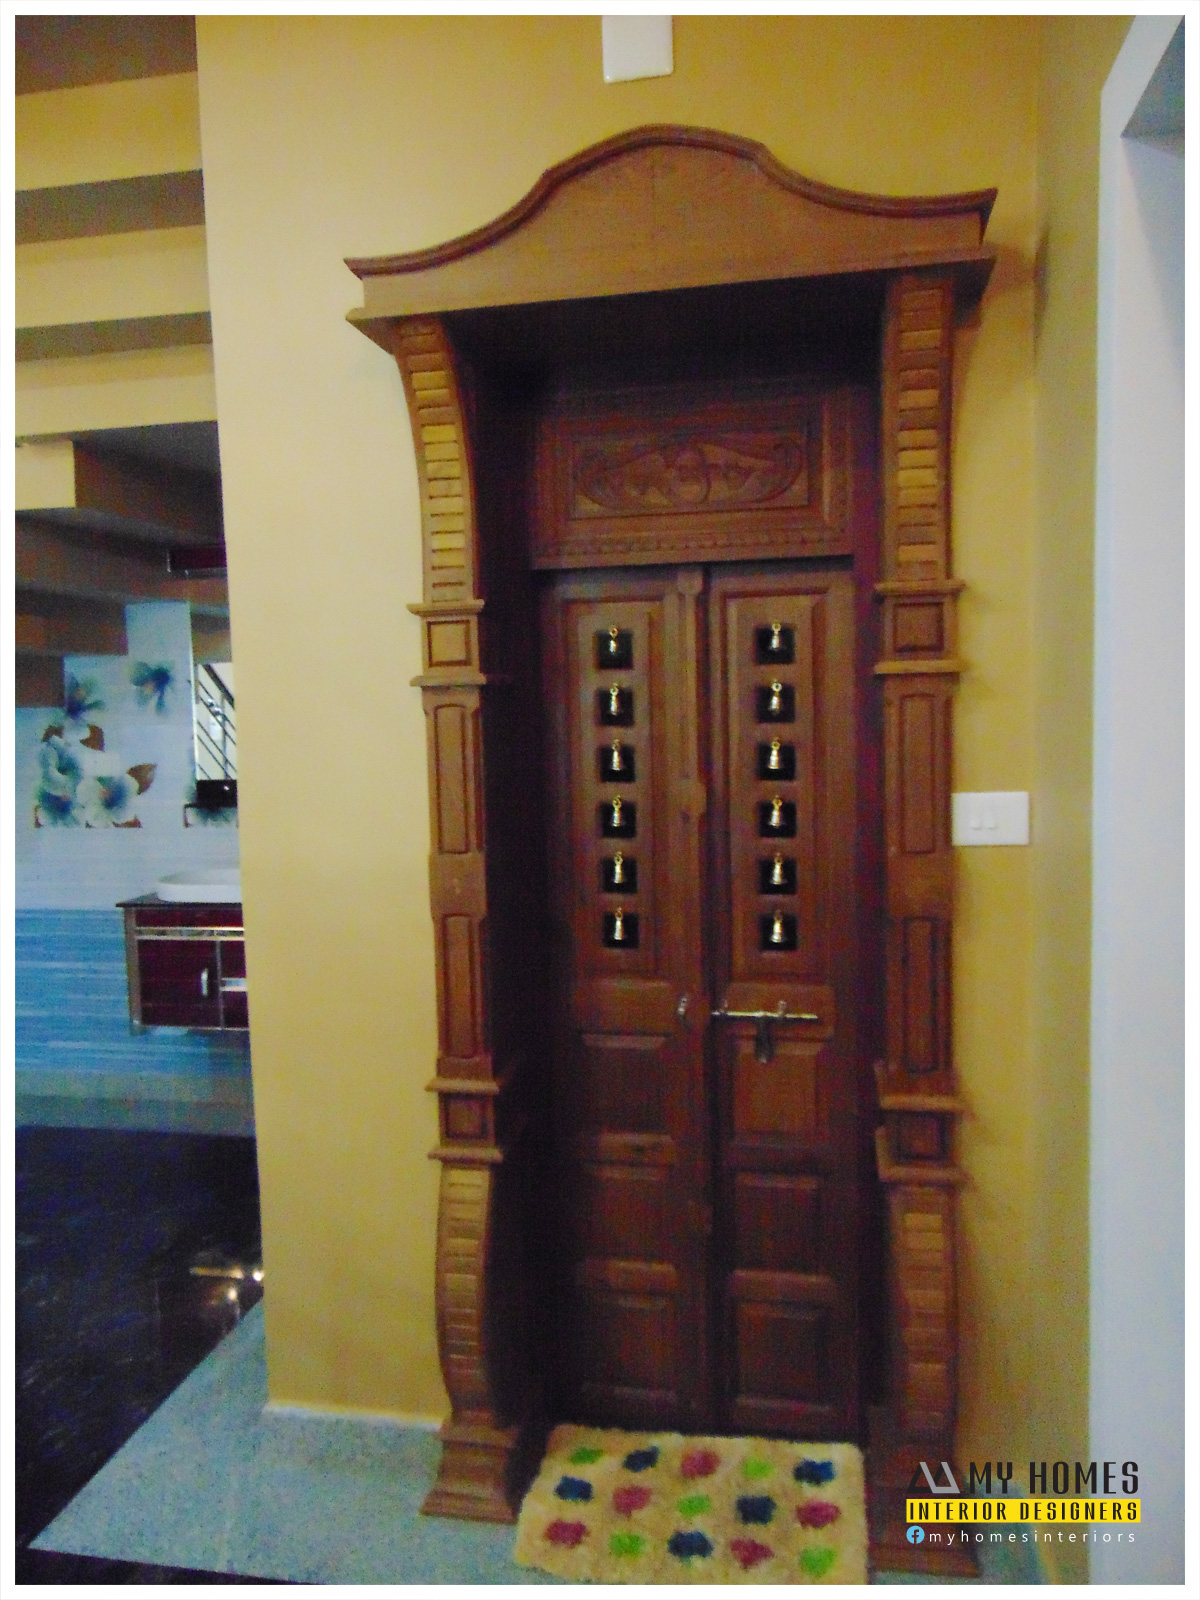 Pooja Room Door Designs Pooja Room: Traditional Homes House Interior Pooja Room Designs Kerala